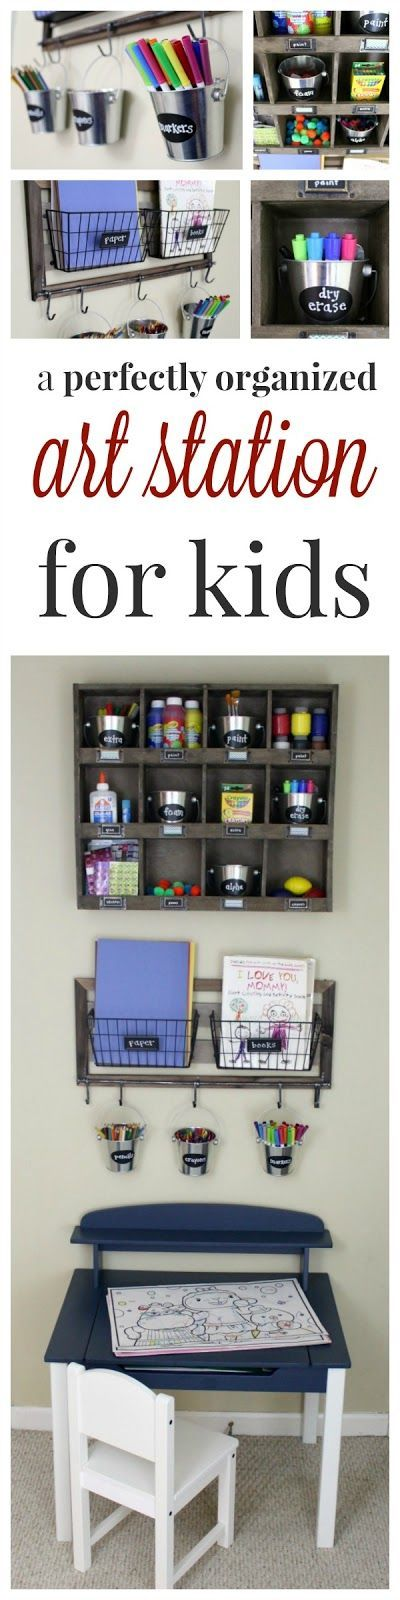 A perfectly organized art station for kids- great way to organized art supplies for easy set up and clean up of art or craft projects from toddler to elementary schoool age